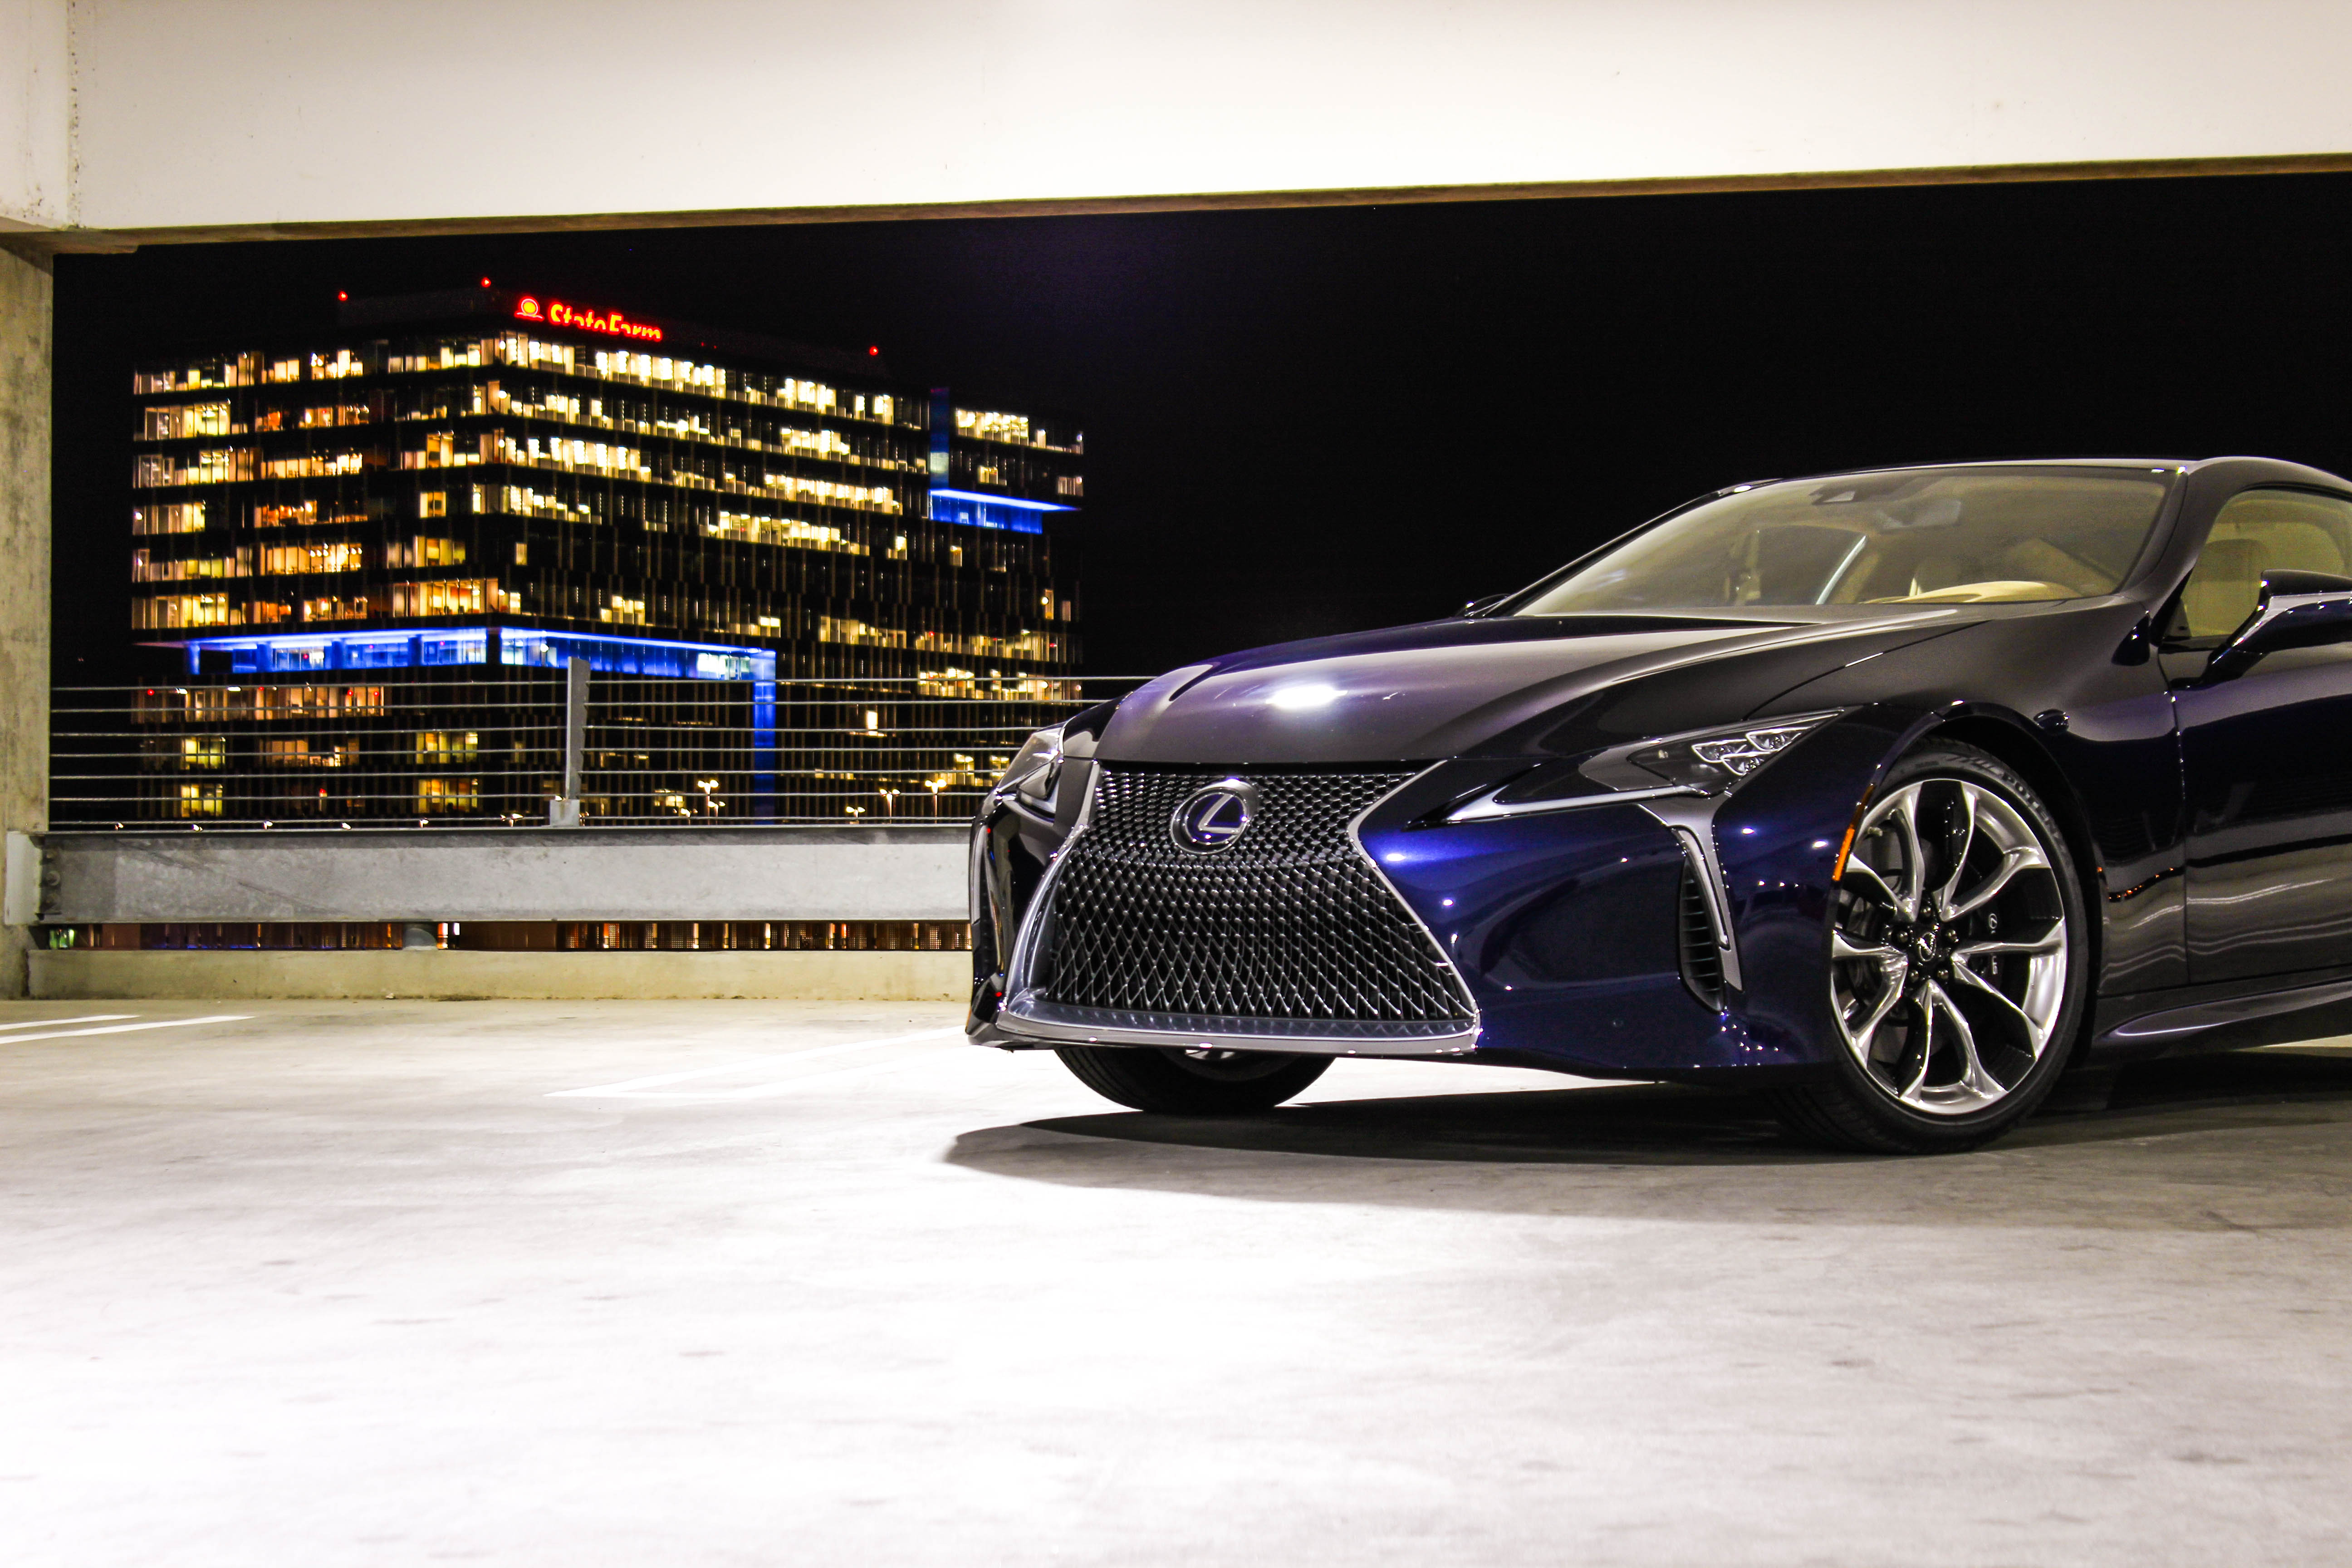 After The Demise Of The LFA, What Was Next For Lexus? Theyu0027ve Been Stuck  Producing Commonplace, Mass Production Cars But Never ...